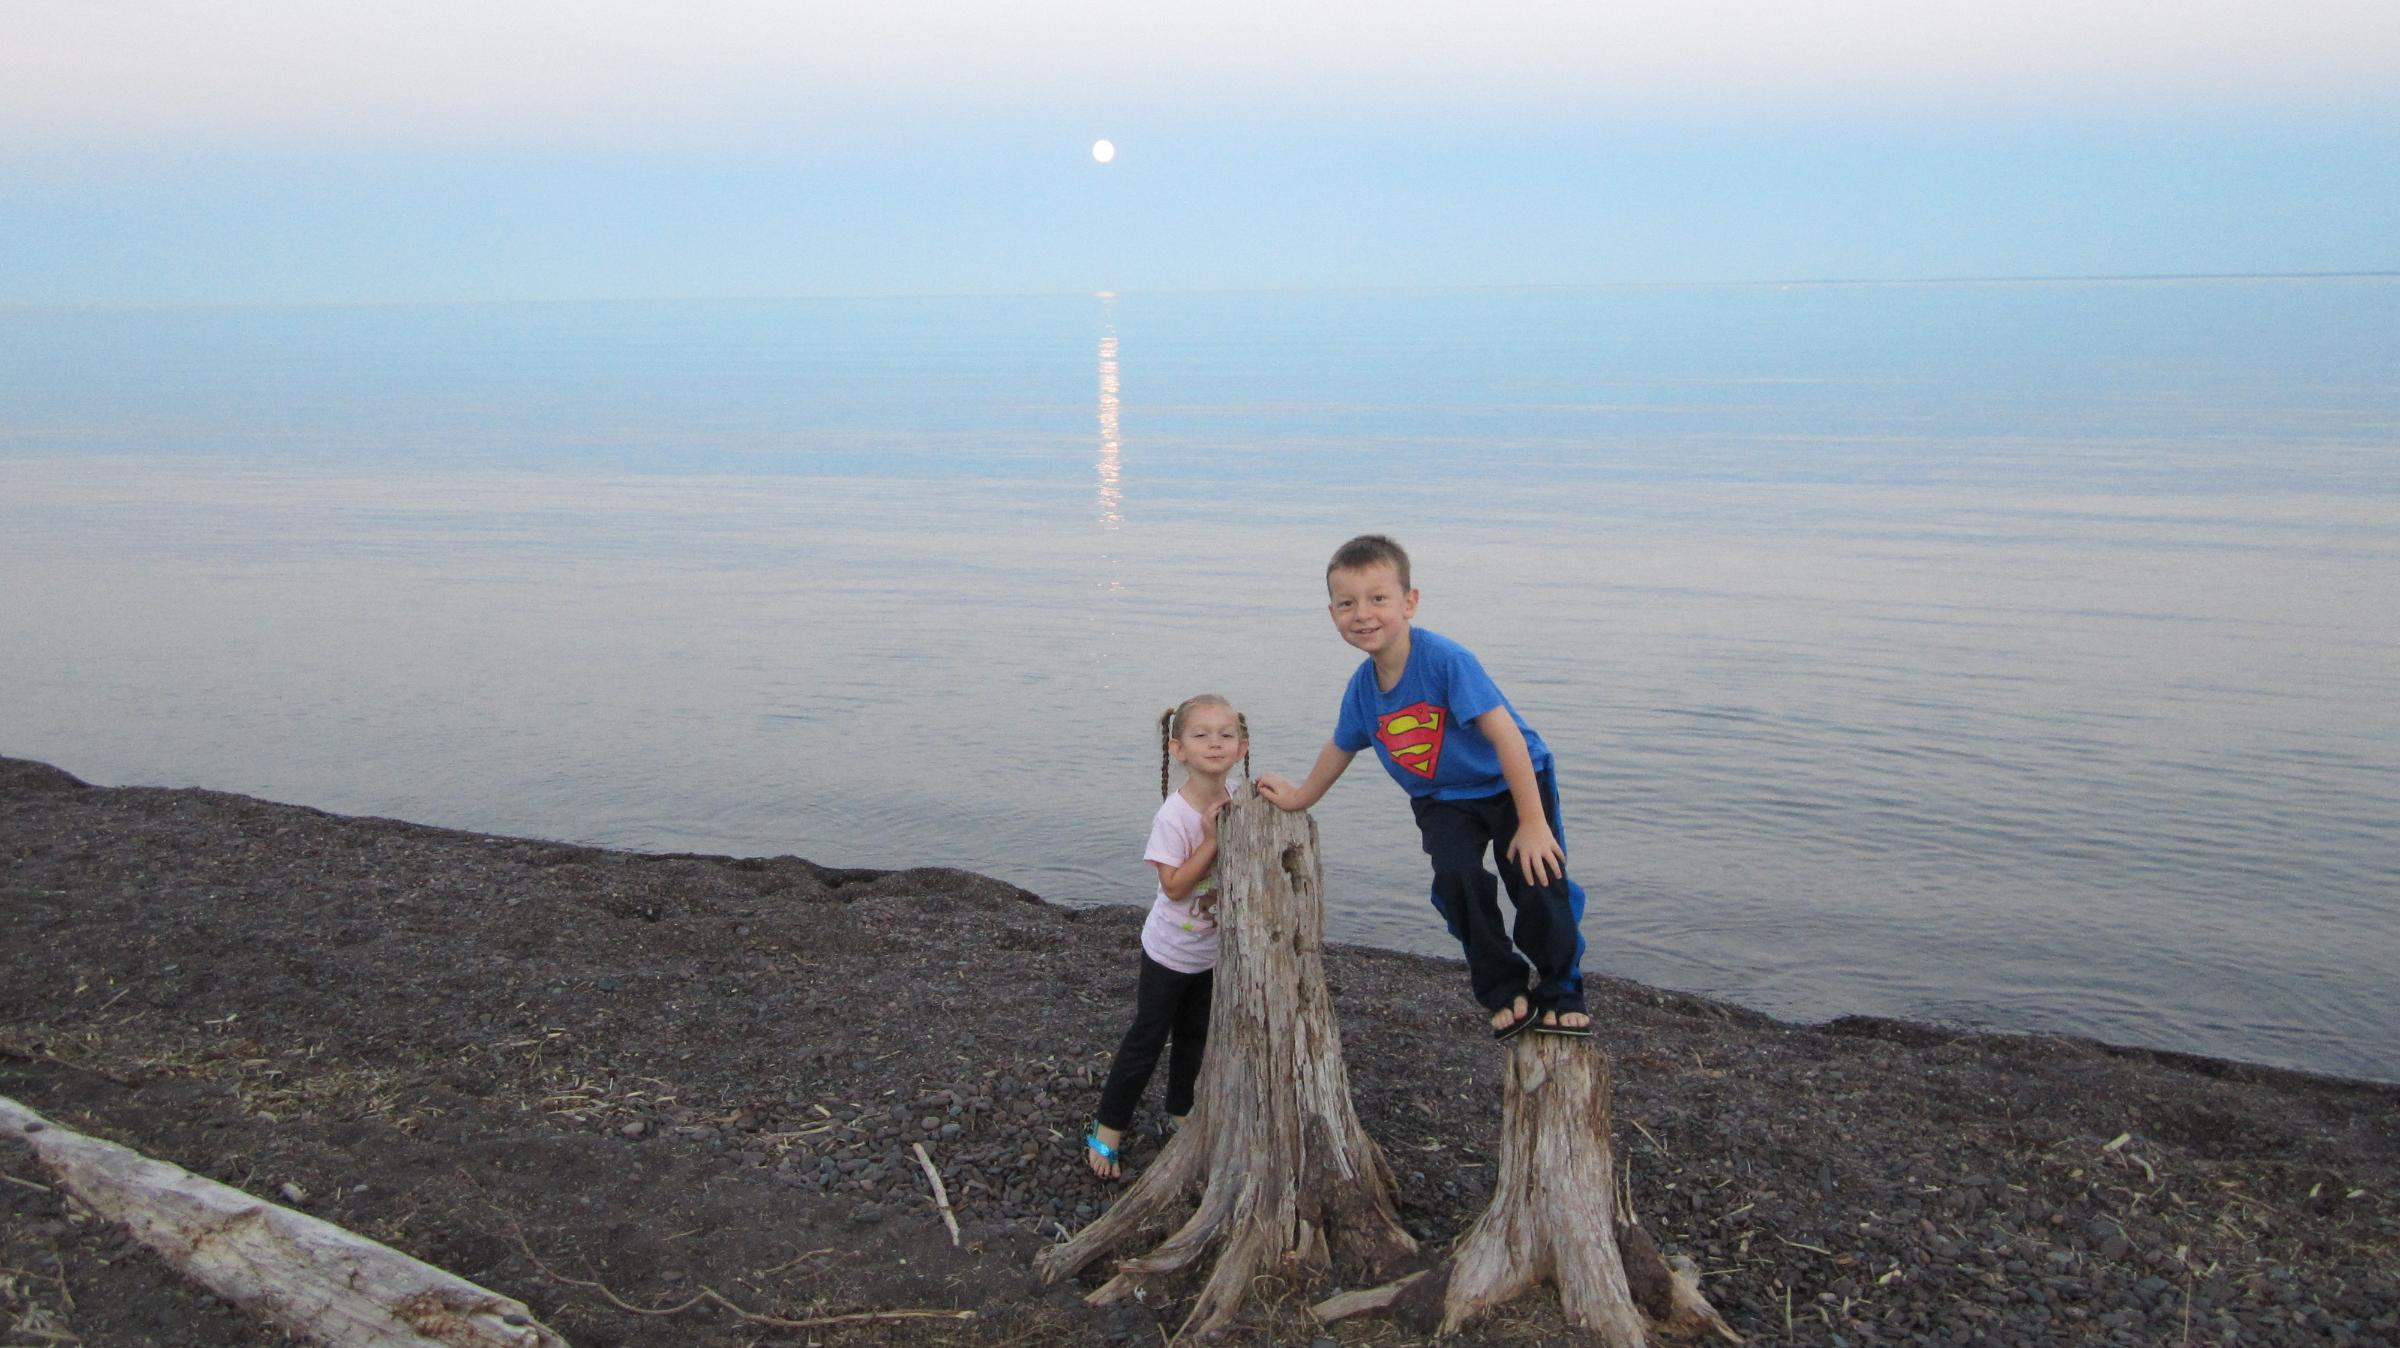 Blue Moon, 8/31/12, Lake Superior